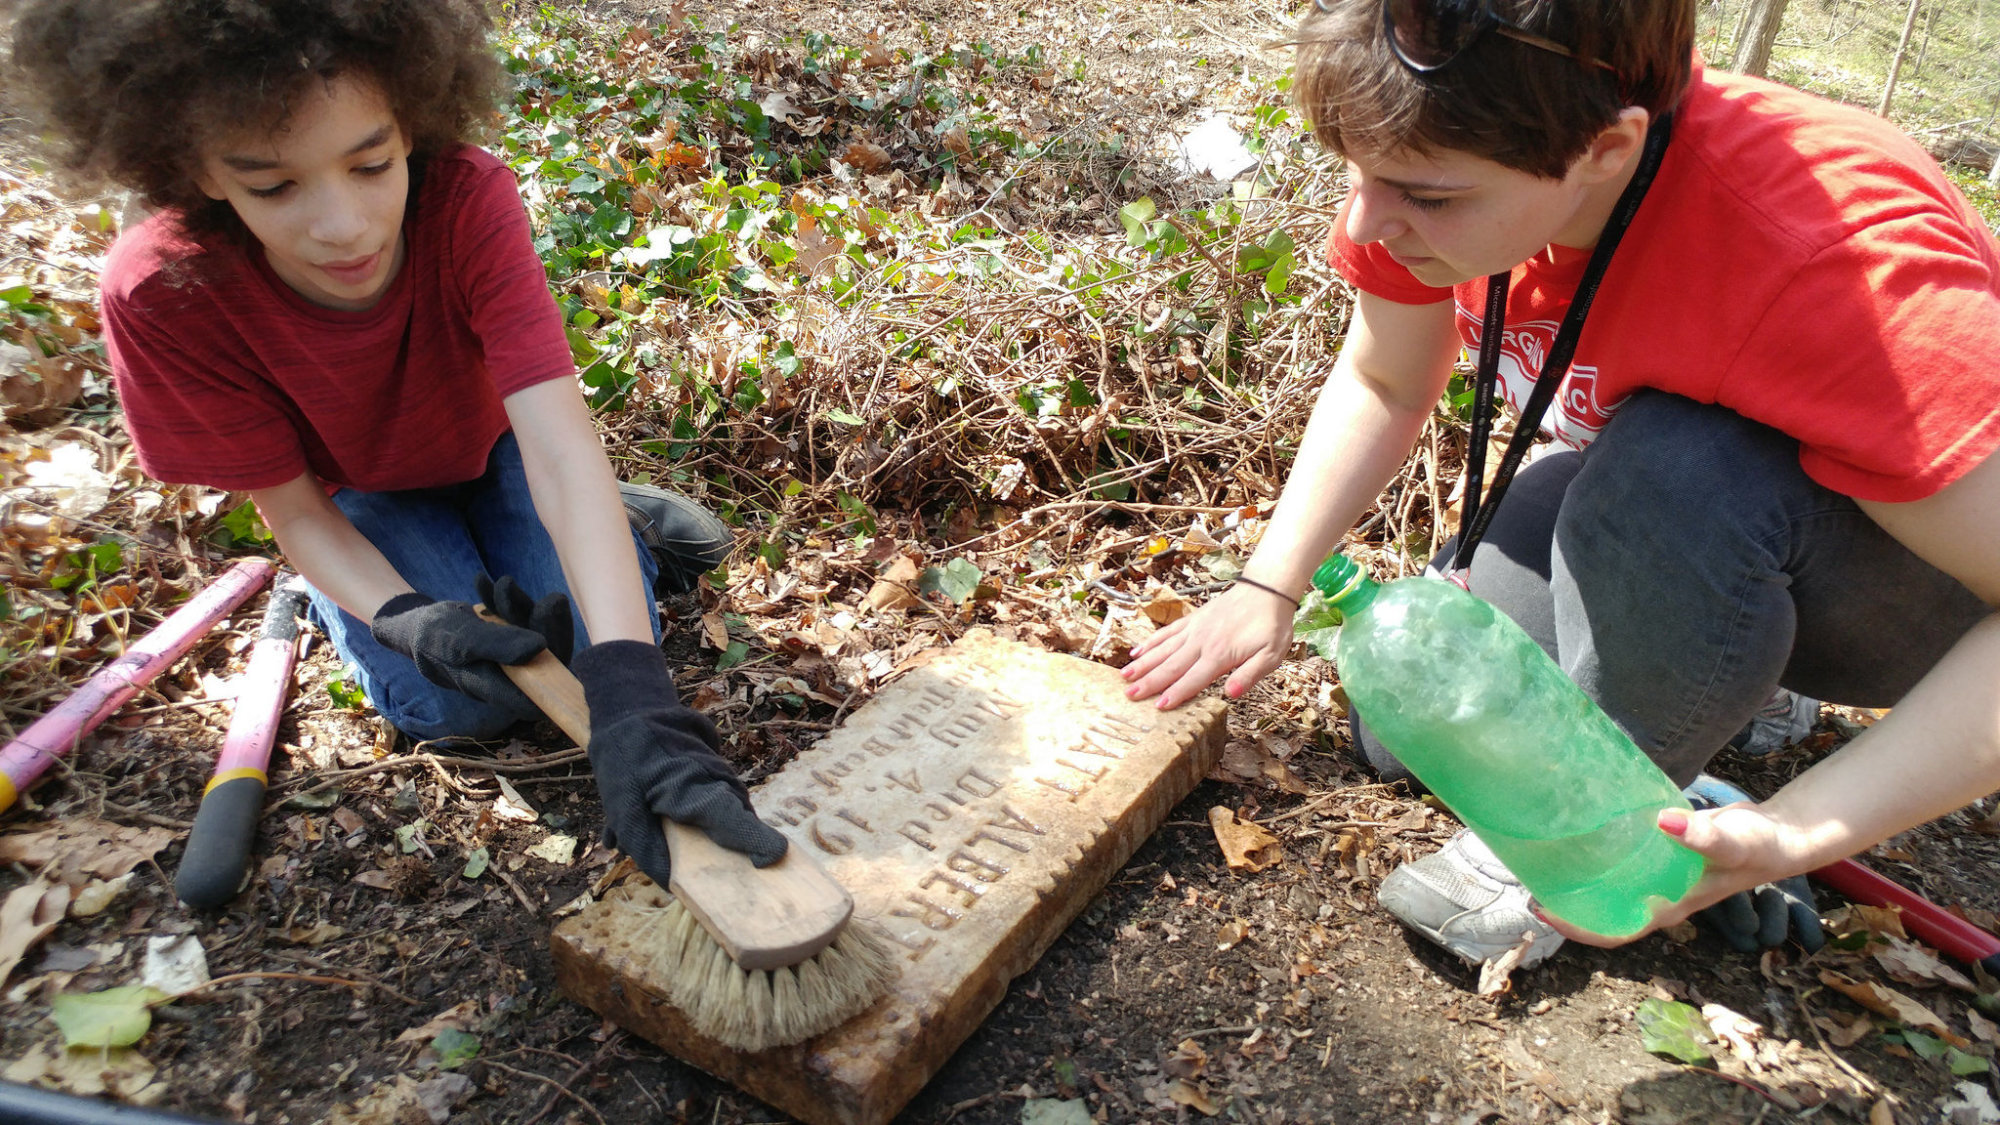 Volunteers clean an uncovered headstone at East End Cemetery. (Photo credit: George Copeland Jr.)